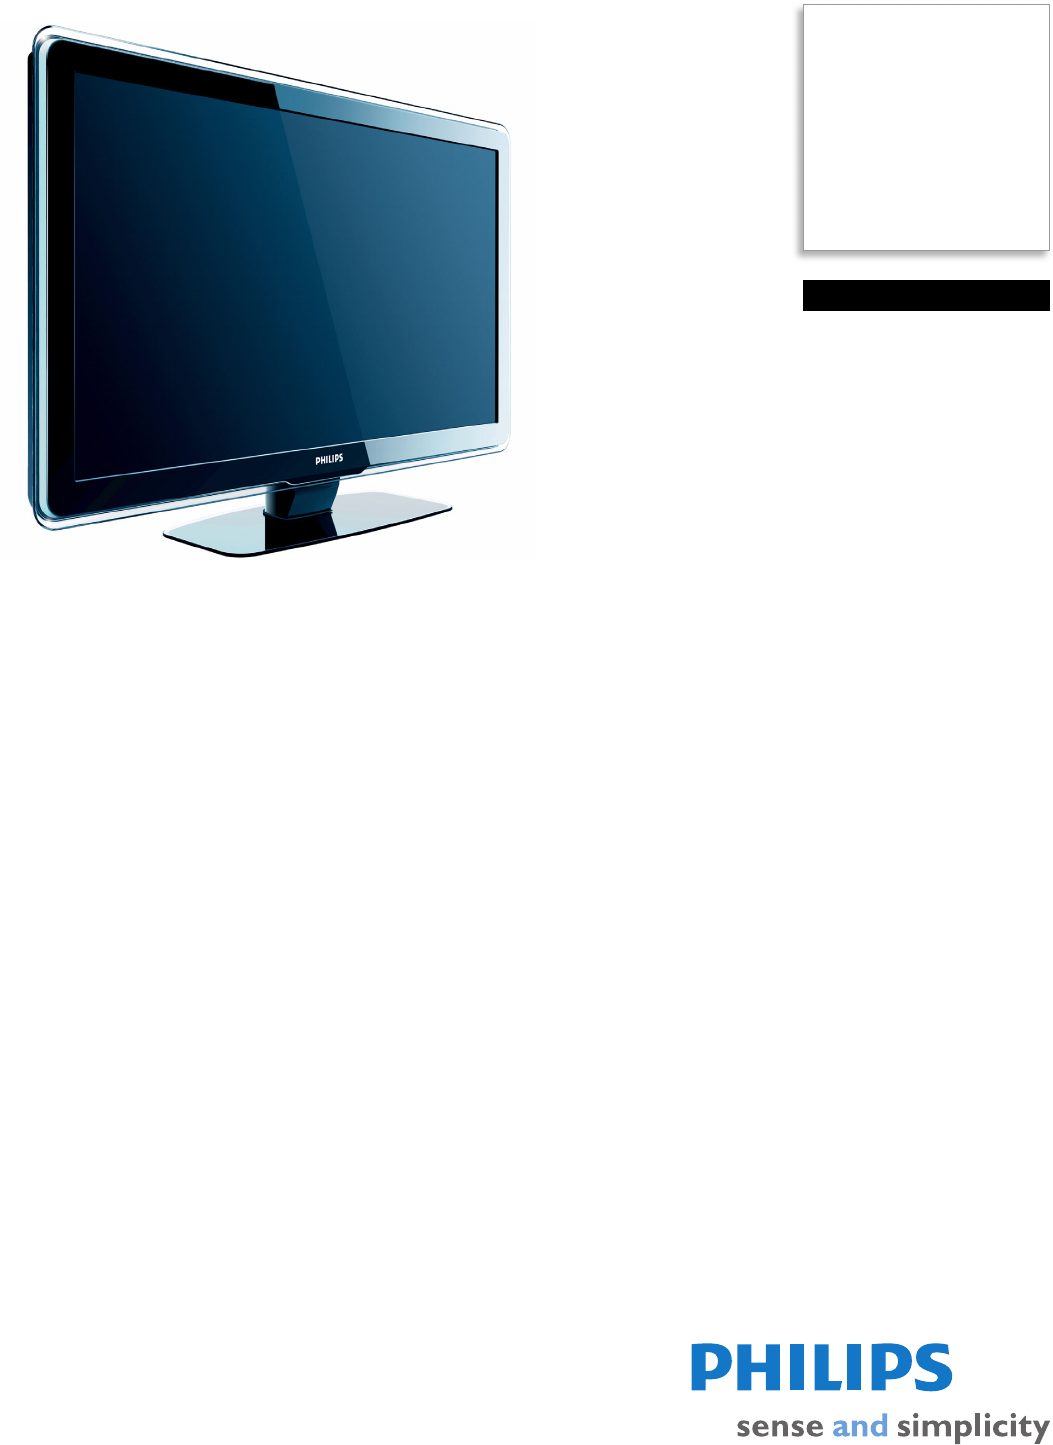 philips flat panel television 47pfl7403d f7 user guide rh tv manualsonline com Philips Flat TV Owner Manual Philips Instruction Manuals